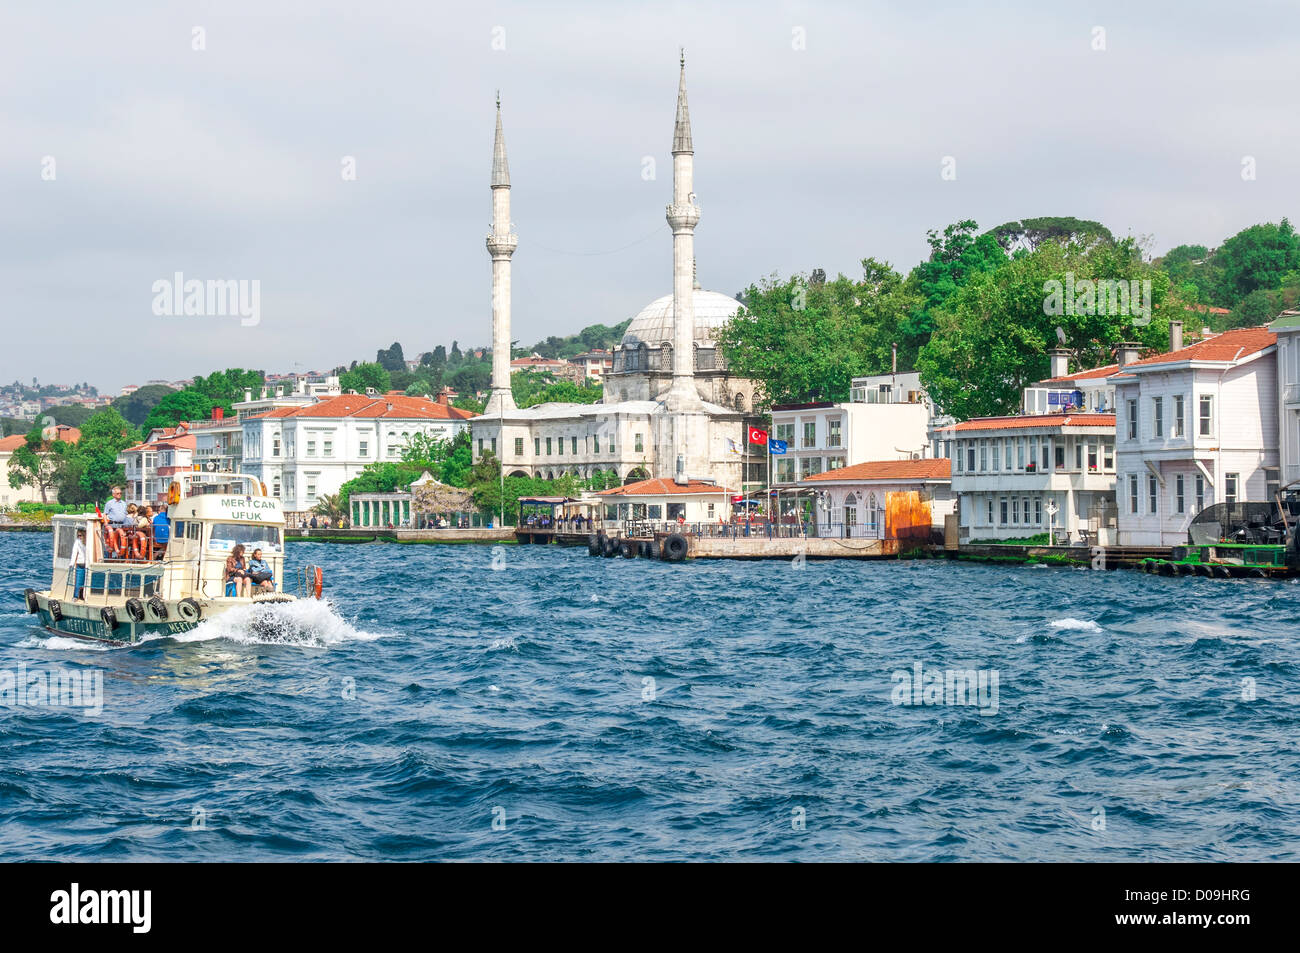 Mihrimah Sultan Mosque or Iskele Mosque, Uskudar, Istanbul, Turkey - Stock Image